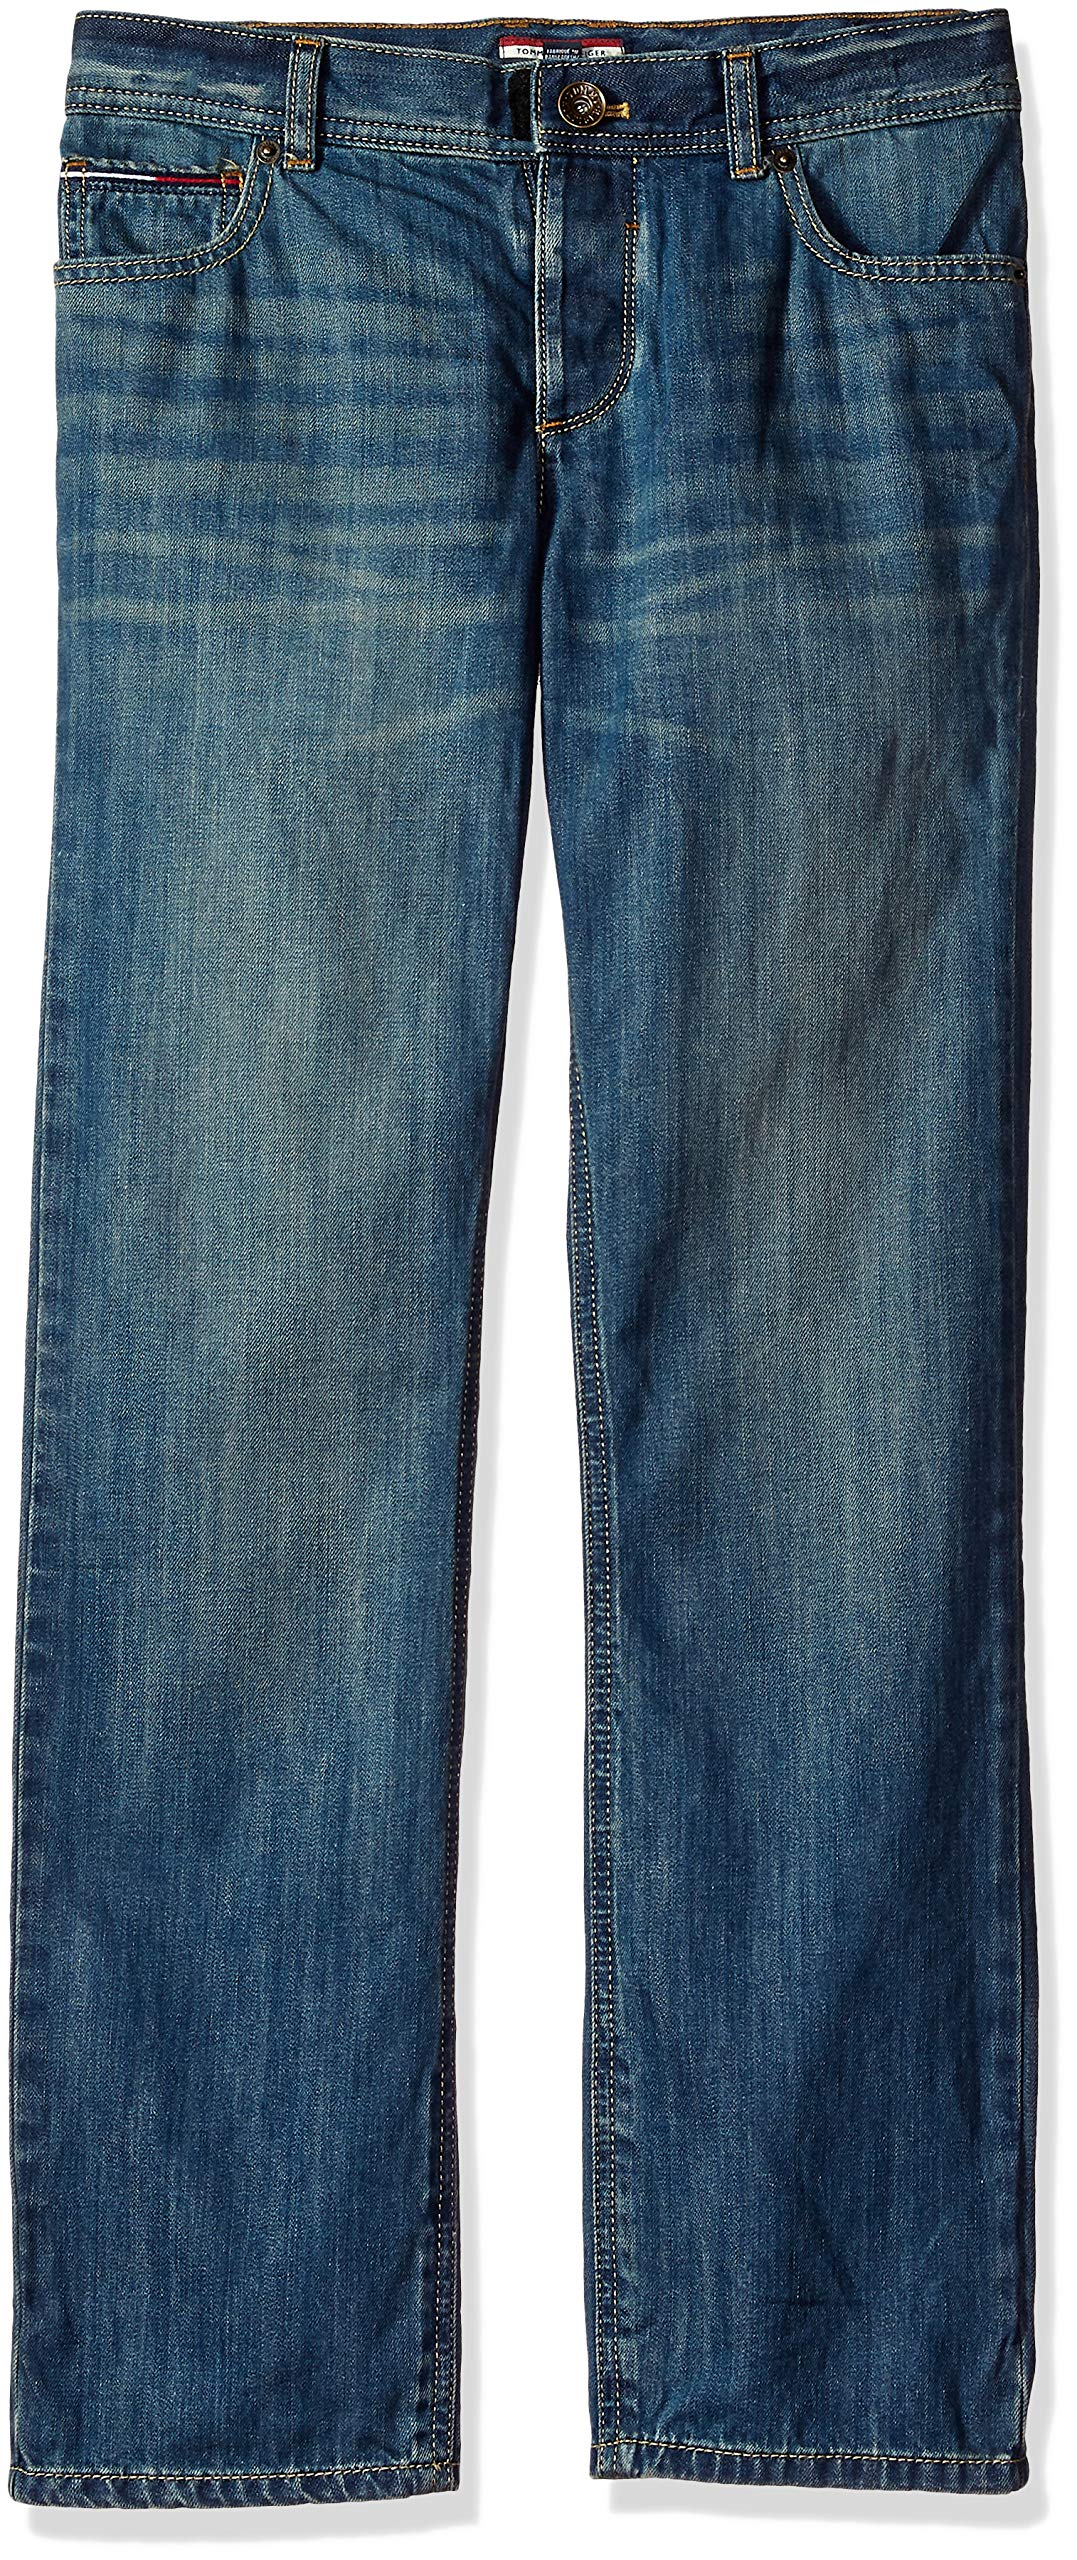 Tommy Hilfiger Boys' Adaptive Jeans Slim Straight Fit with Adjustable Waist and Hems, JONAH wash RINT 12